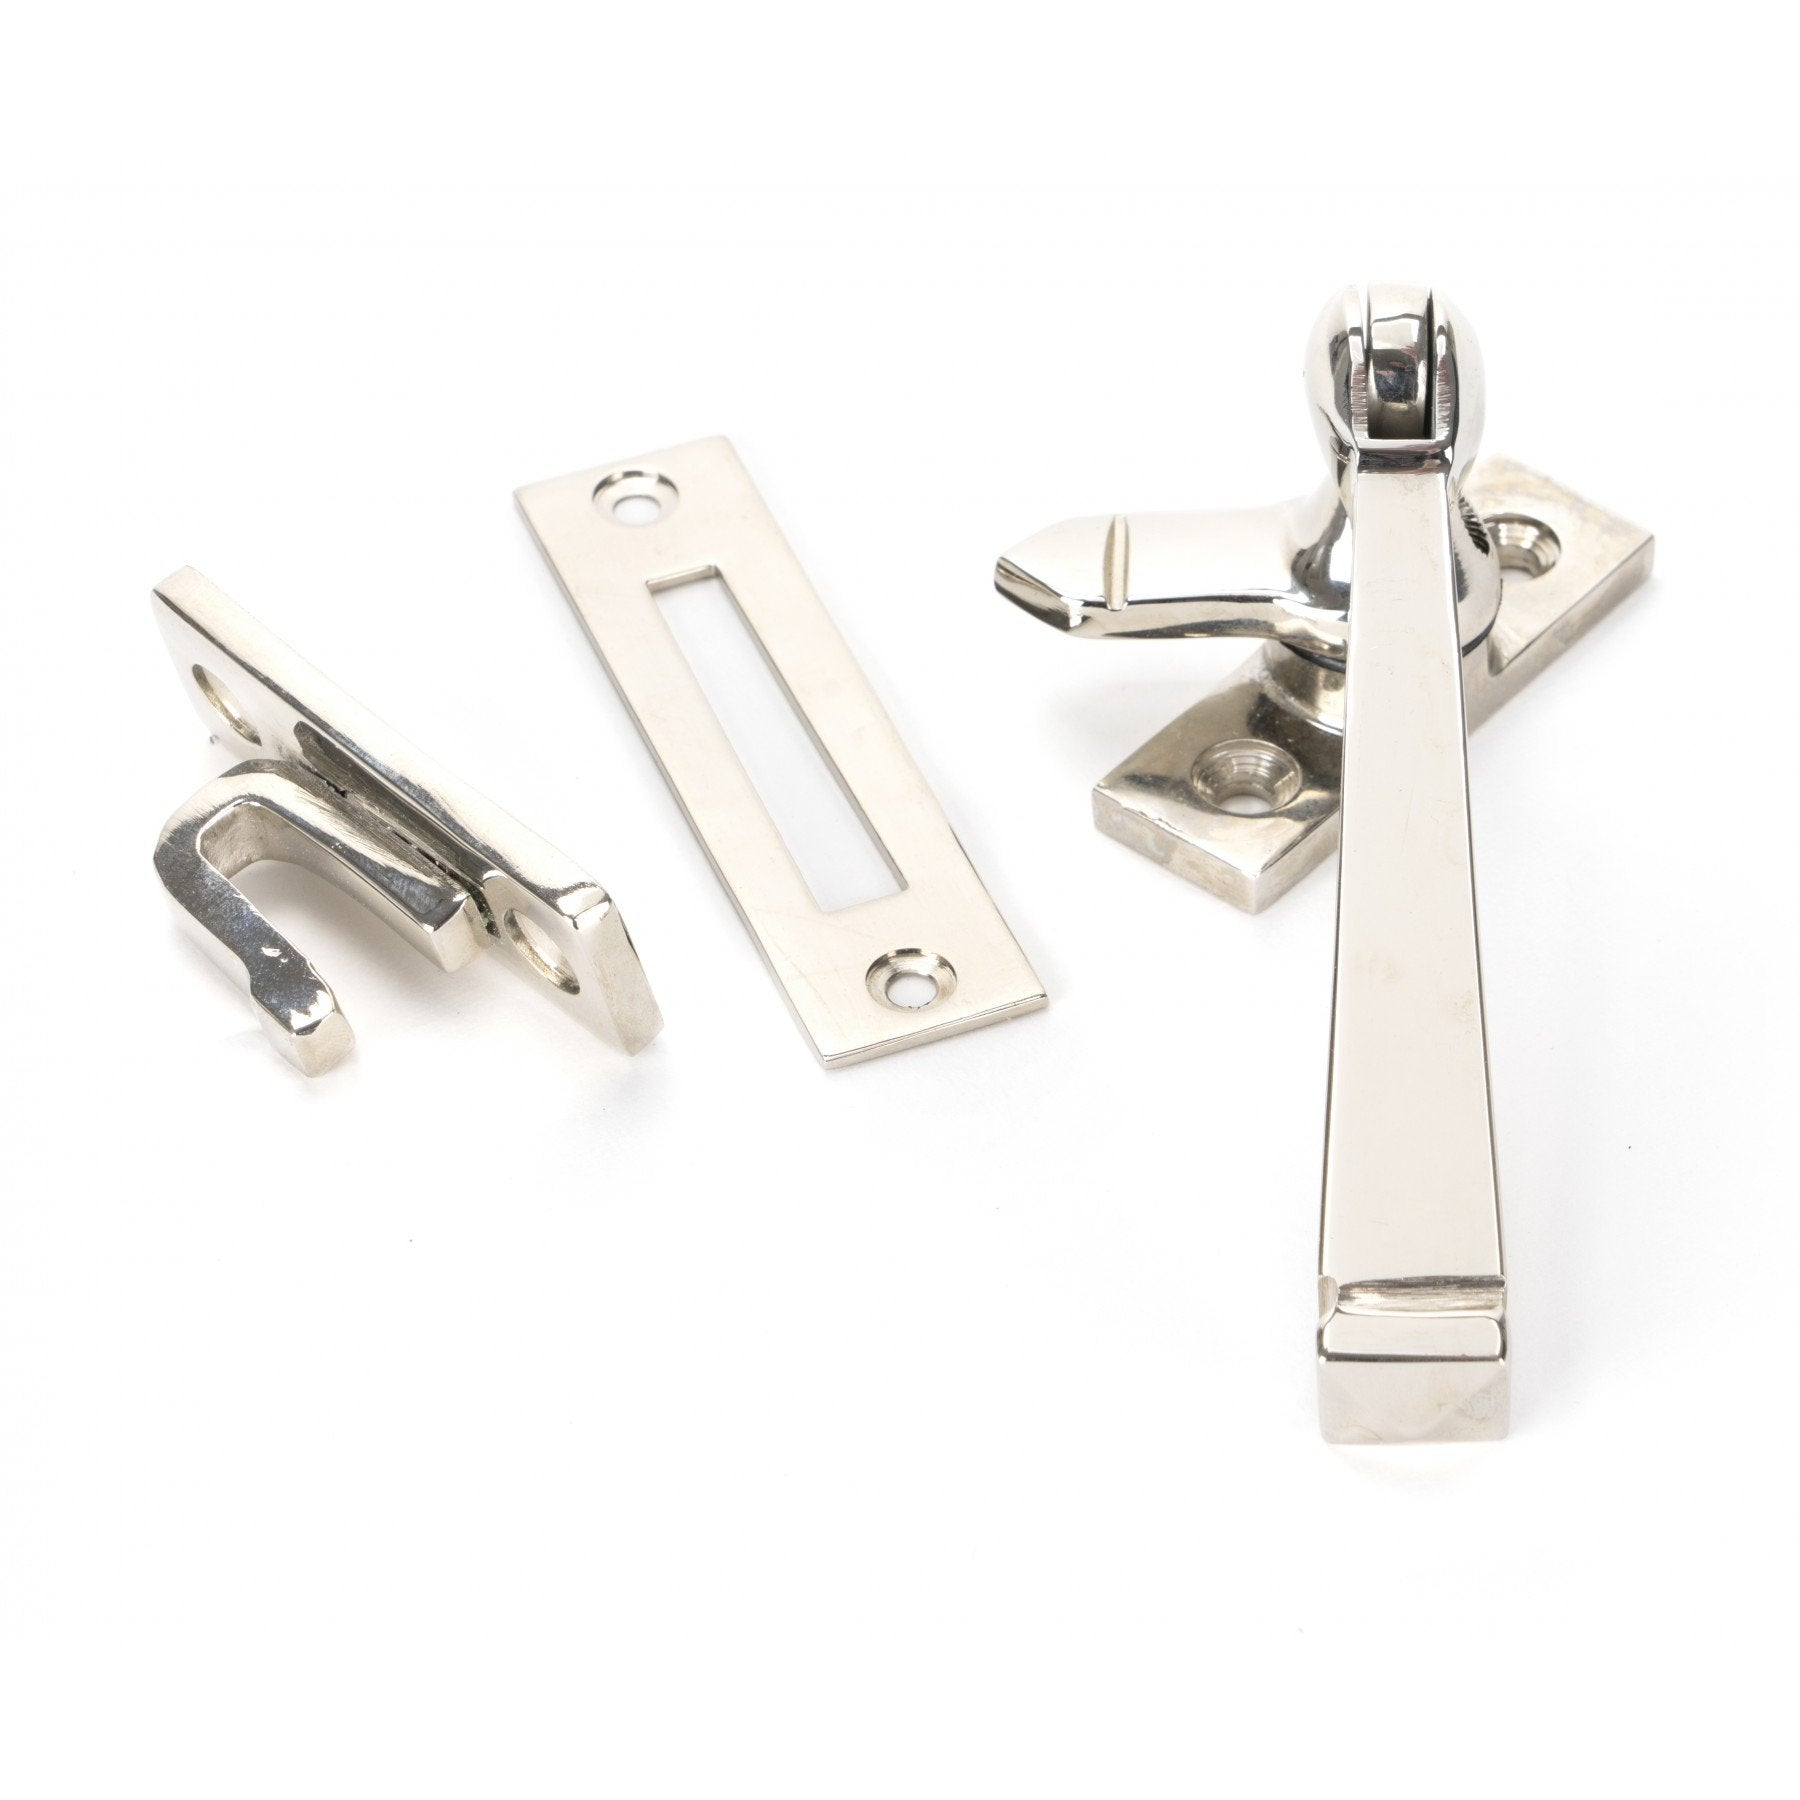 From the Anvil Polished Nickel Locking Avon Fastener